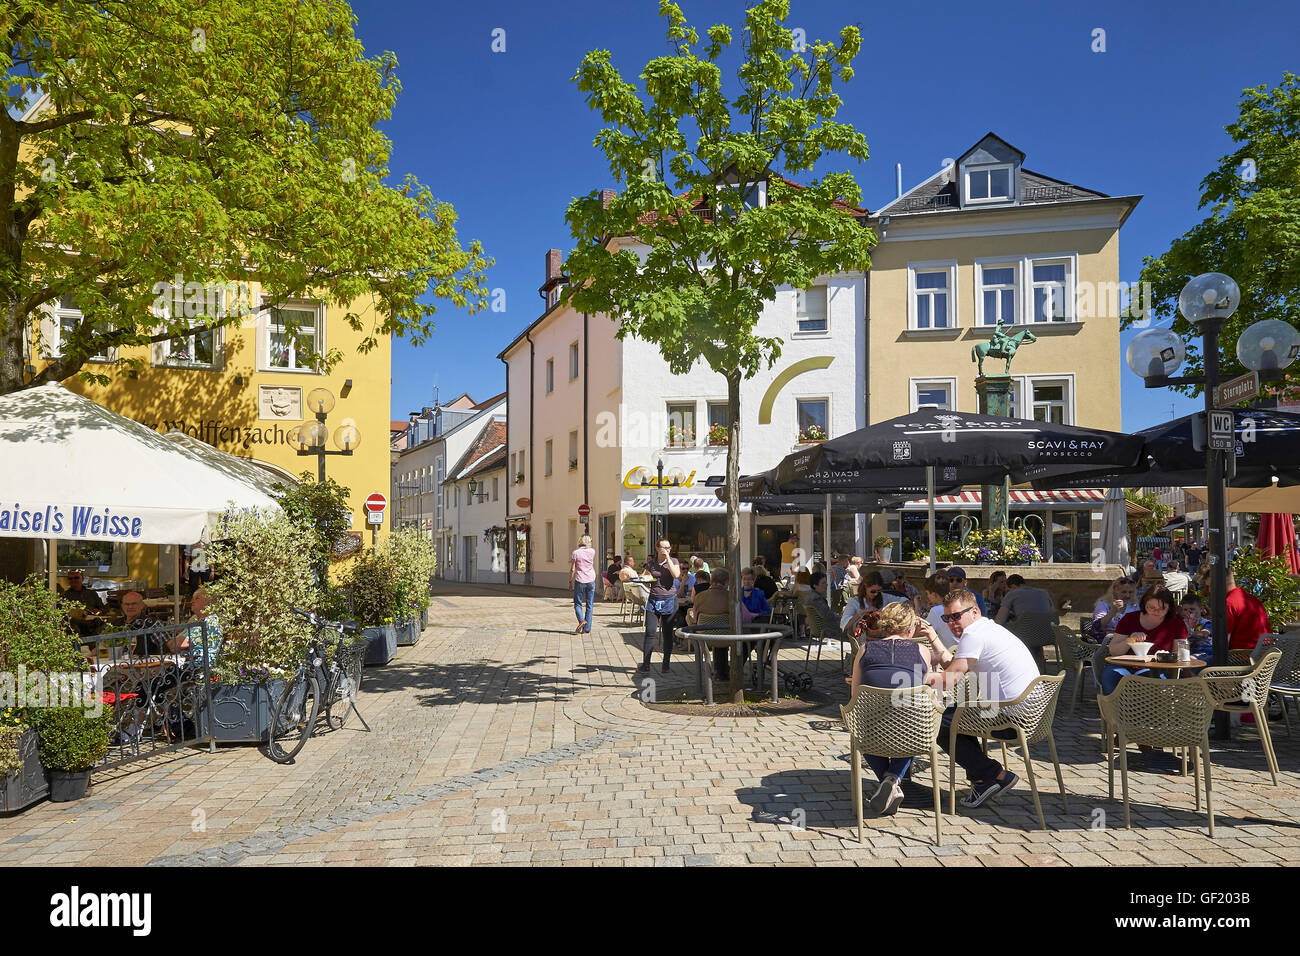 Beer garden in Bayreuth, Germany - Stock Image